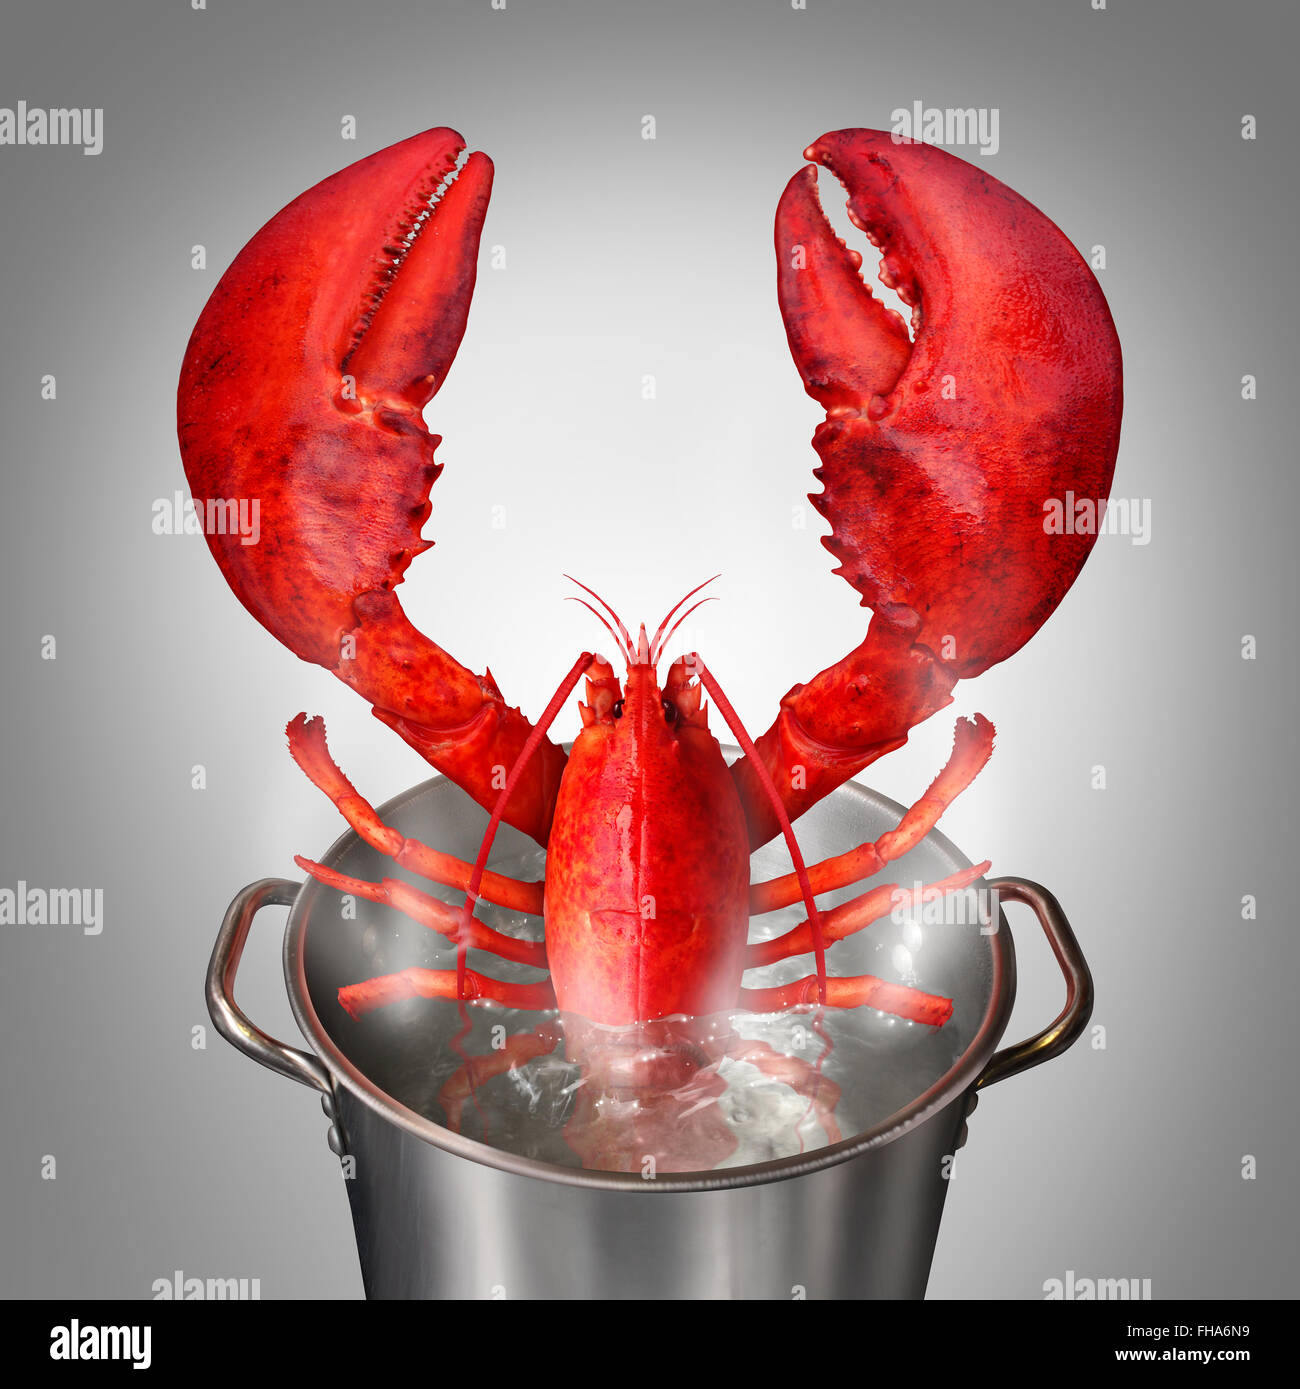 Lobster in a pot as a fresh catch of the day cooked red crustacean sticking out of a cooking kettle with boiling - Stock Image